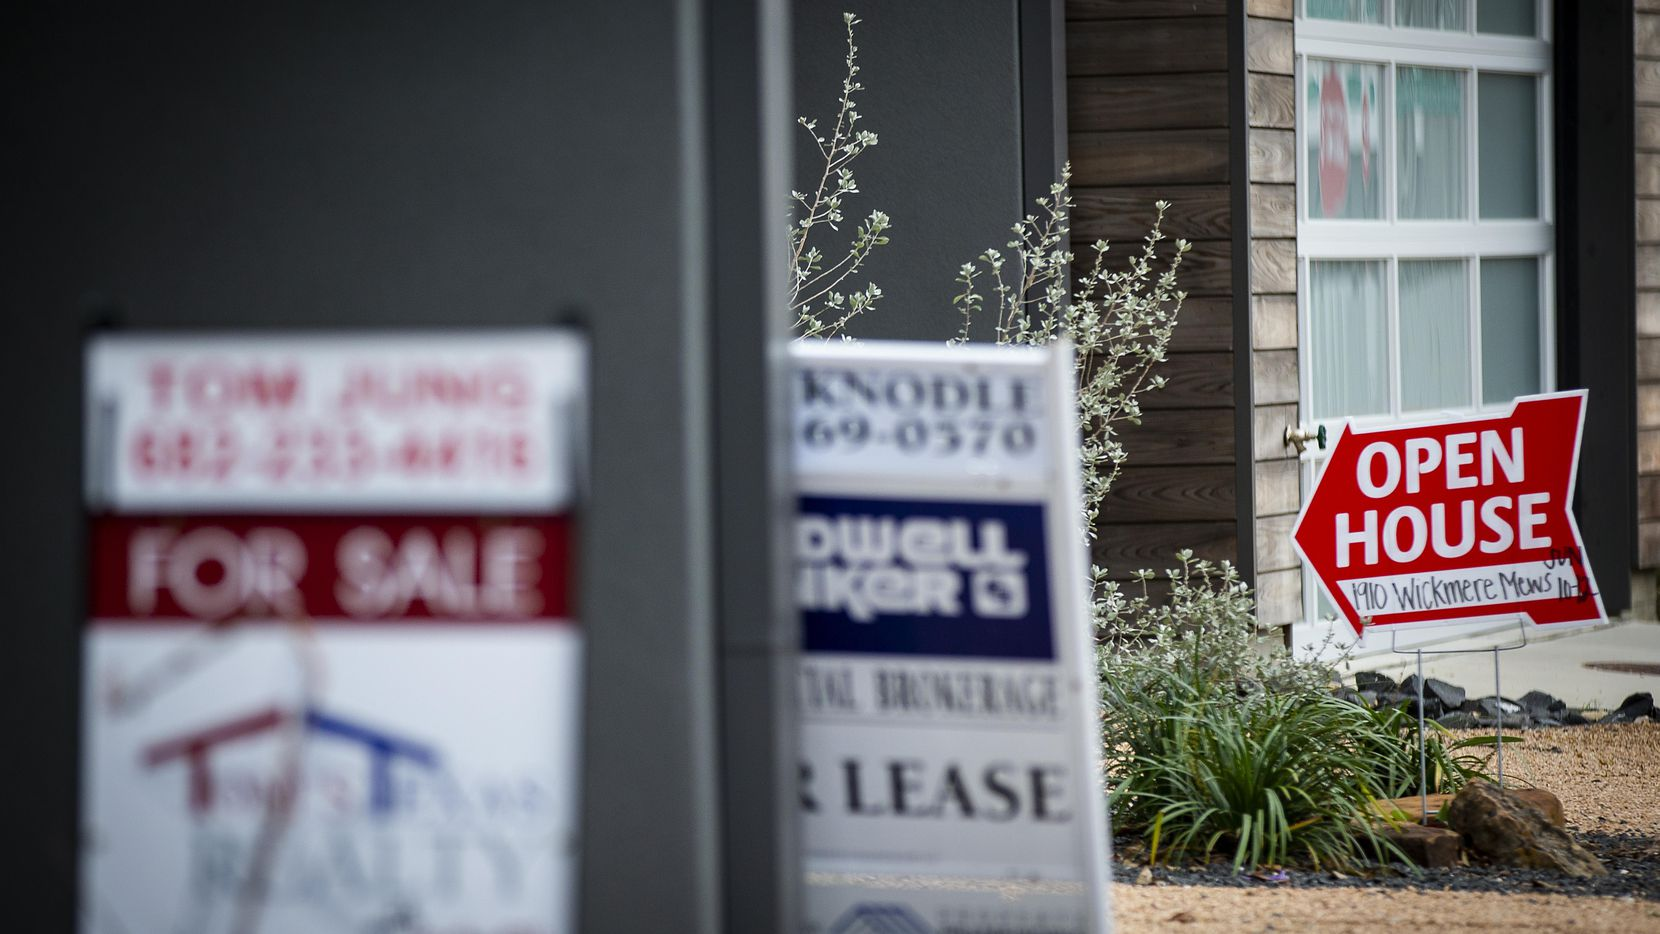 With fewer homes on the market, some analysts are hoping the Dallas area will avoid a price decline.